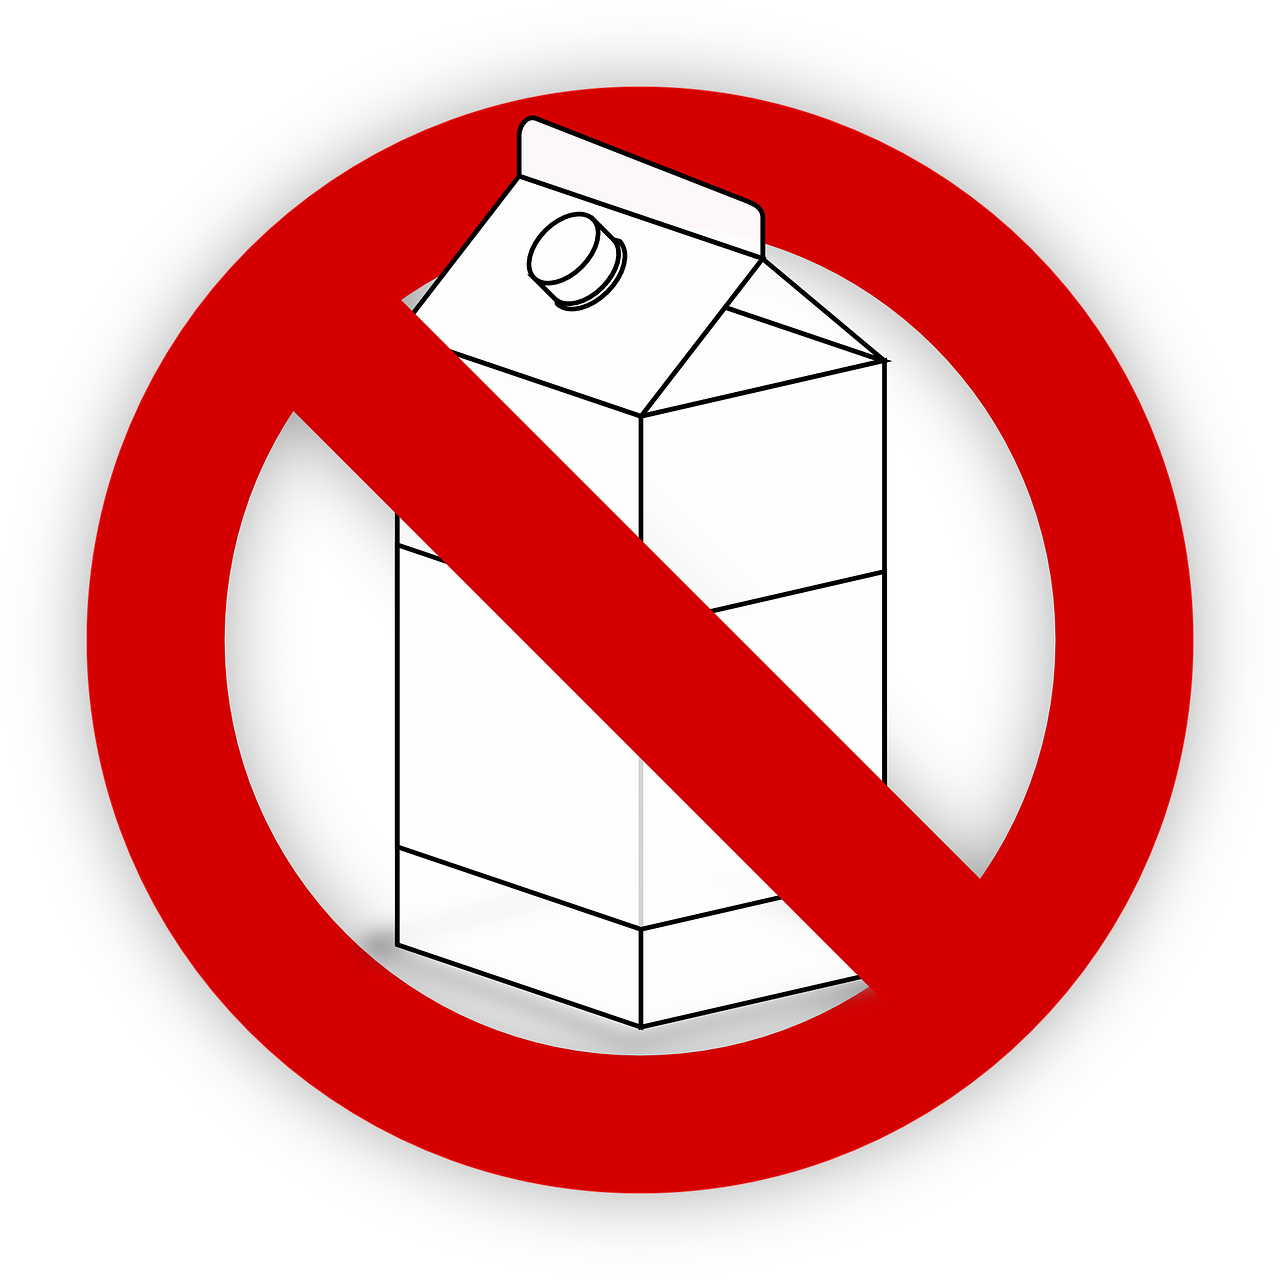 sketch of milk carton with red circle and cross out.